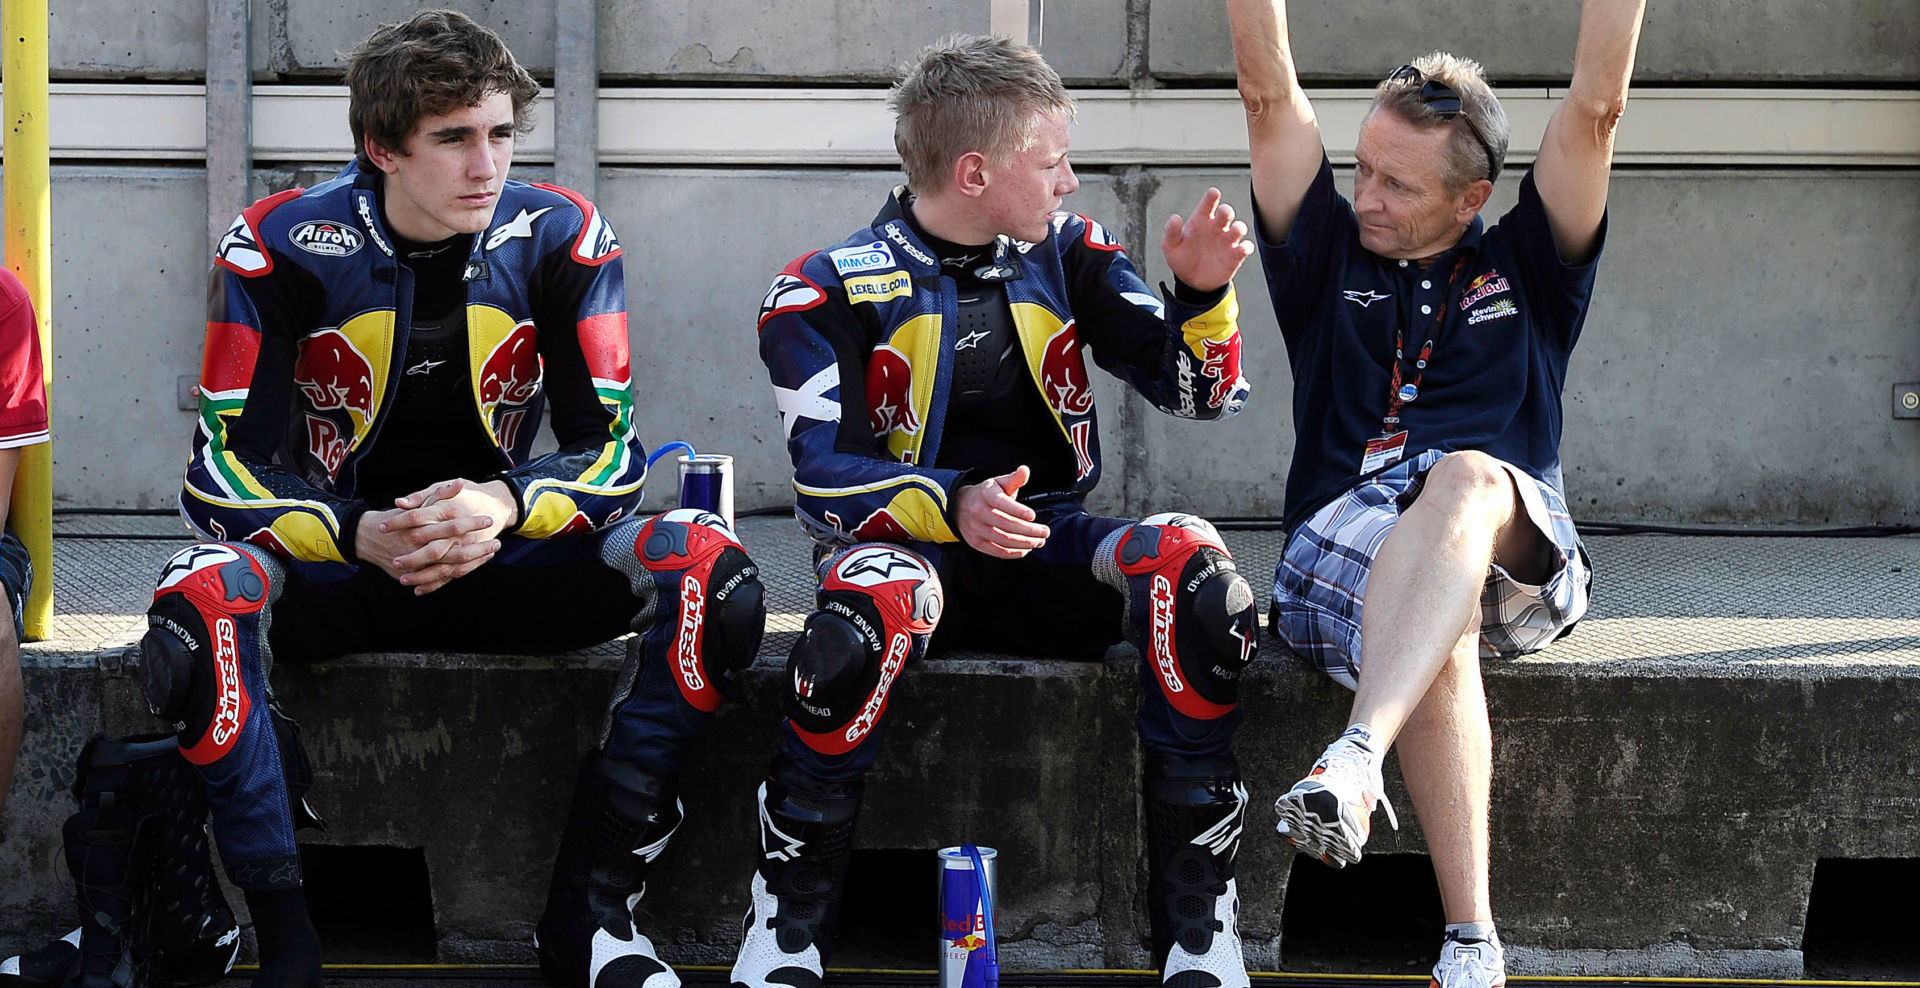 Kevin Schwantz (right) working with Red Bull MotoGP Rookies Cup riders Taylor Mackenzie (center) and Mathew Scholtz (left) at Brno in 2010. Photo by Gold& Goose/GEPA Pictures, courtesy Red Bull.